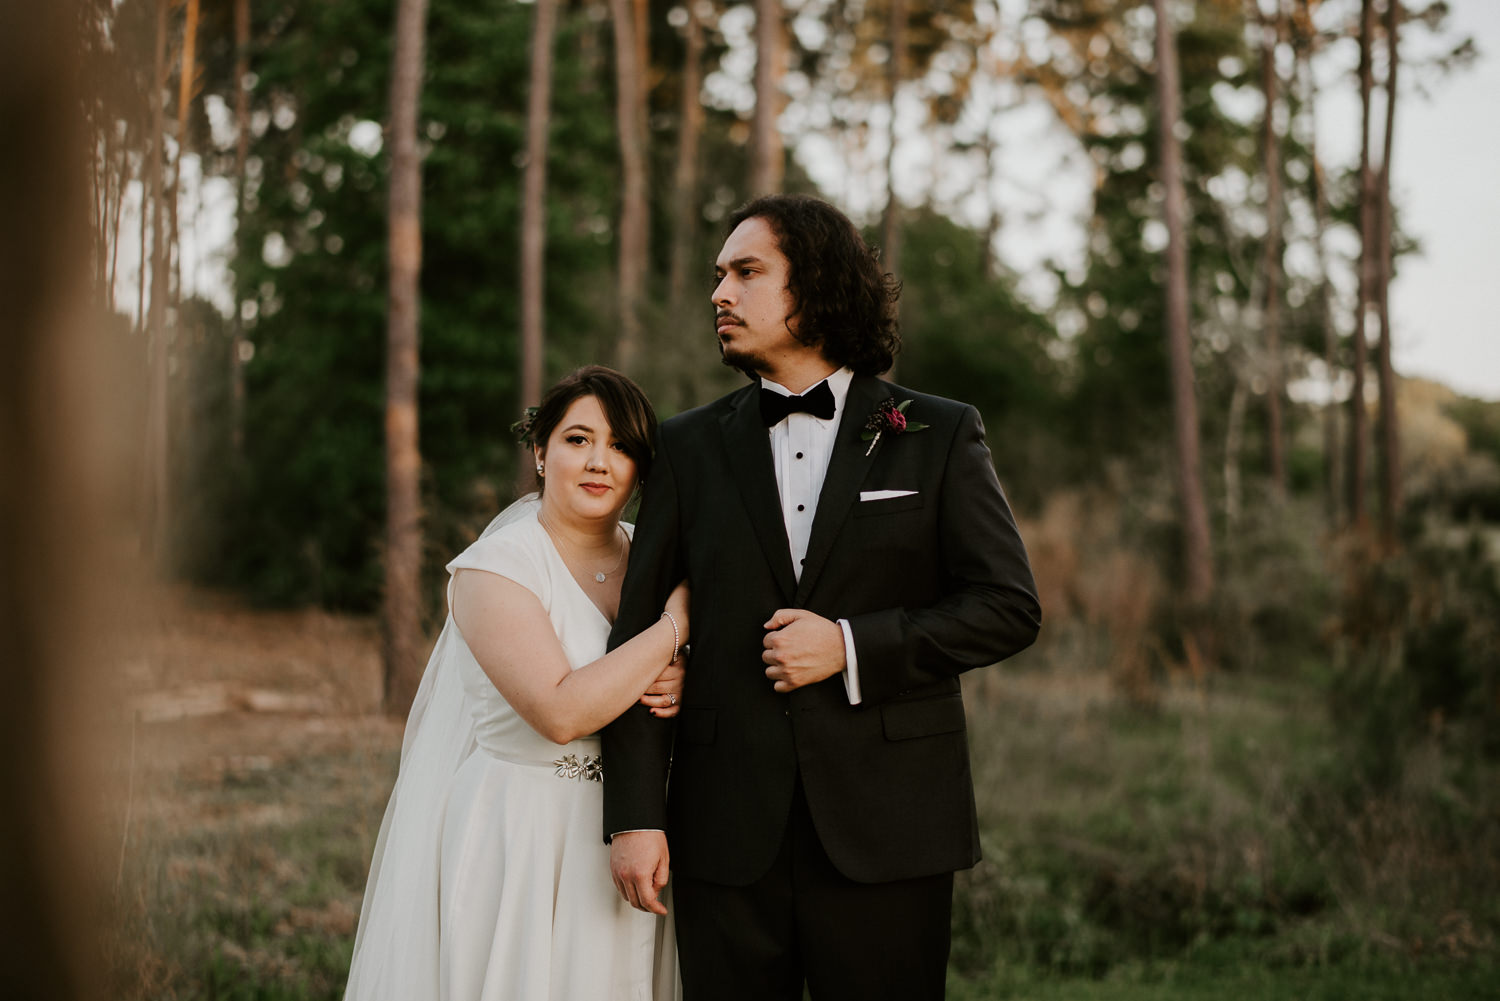 bride and groom portraits by donny tidmore photography